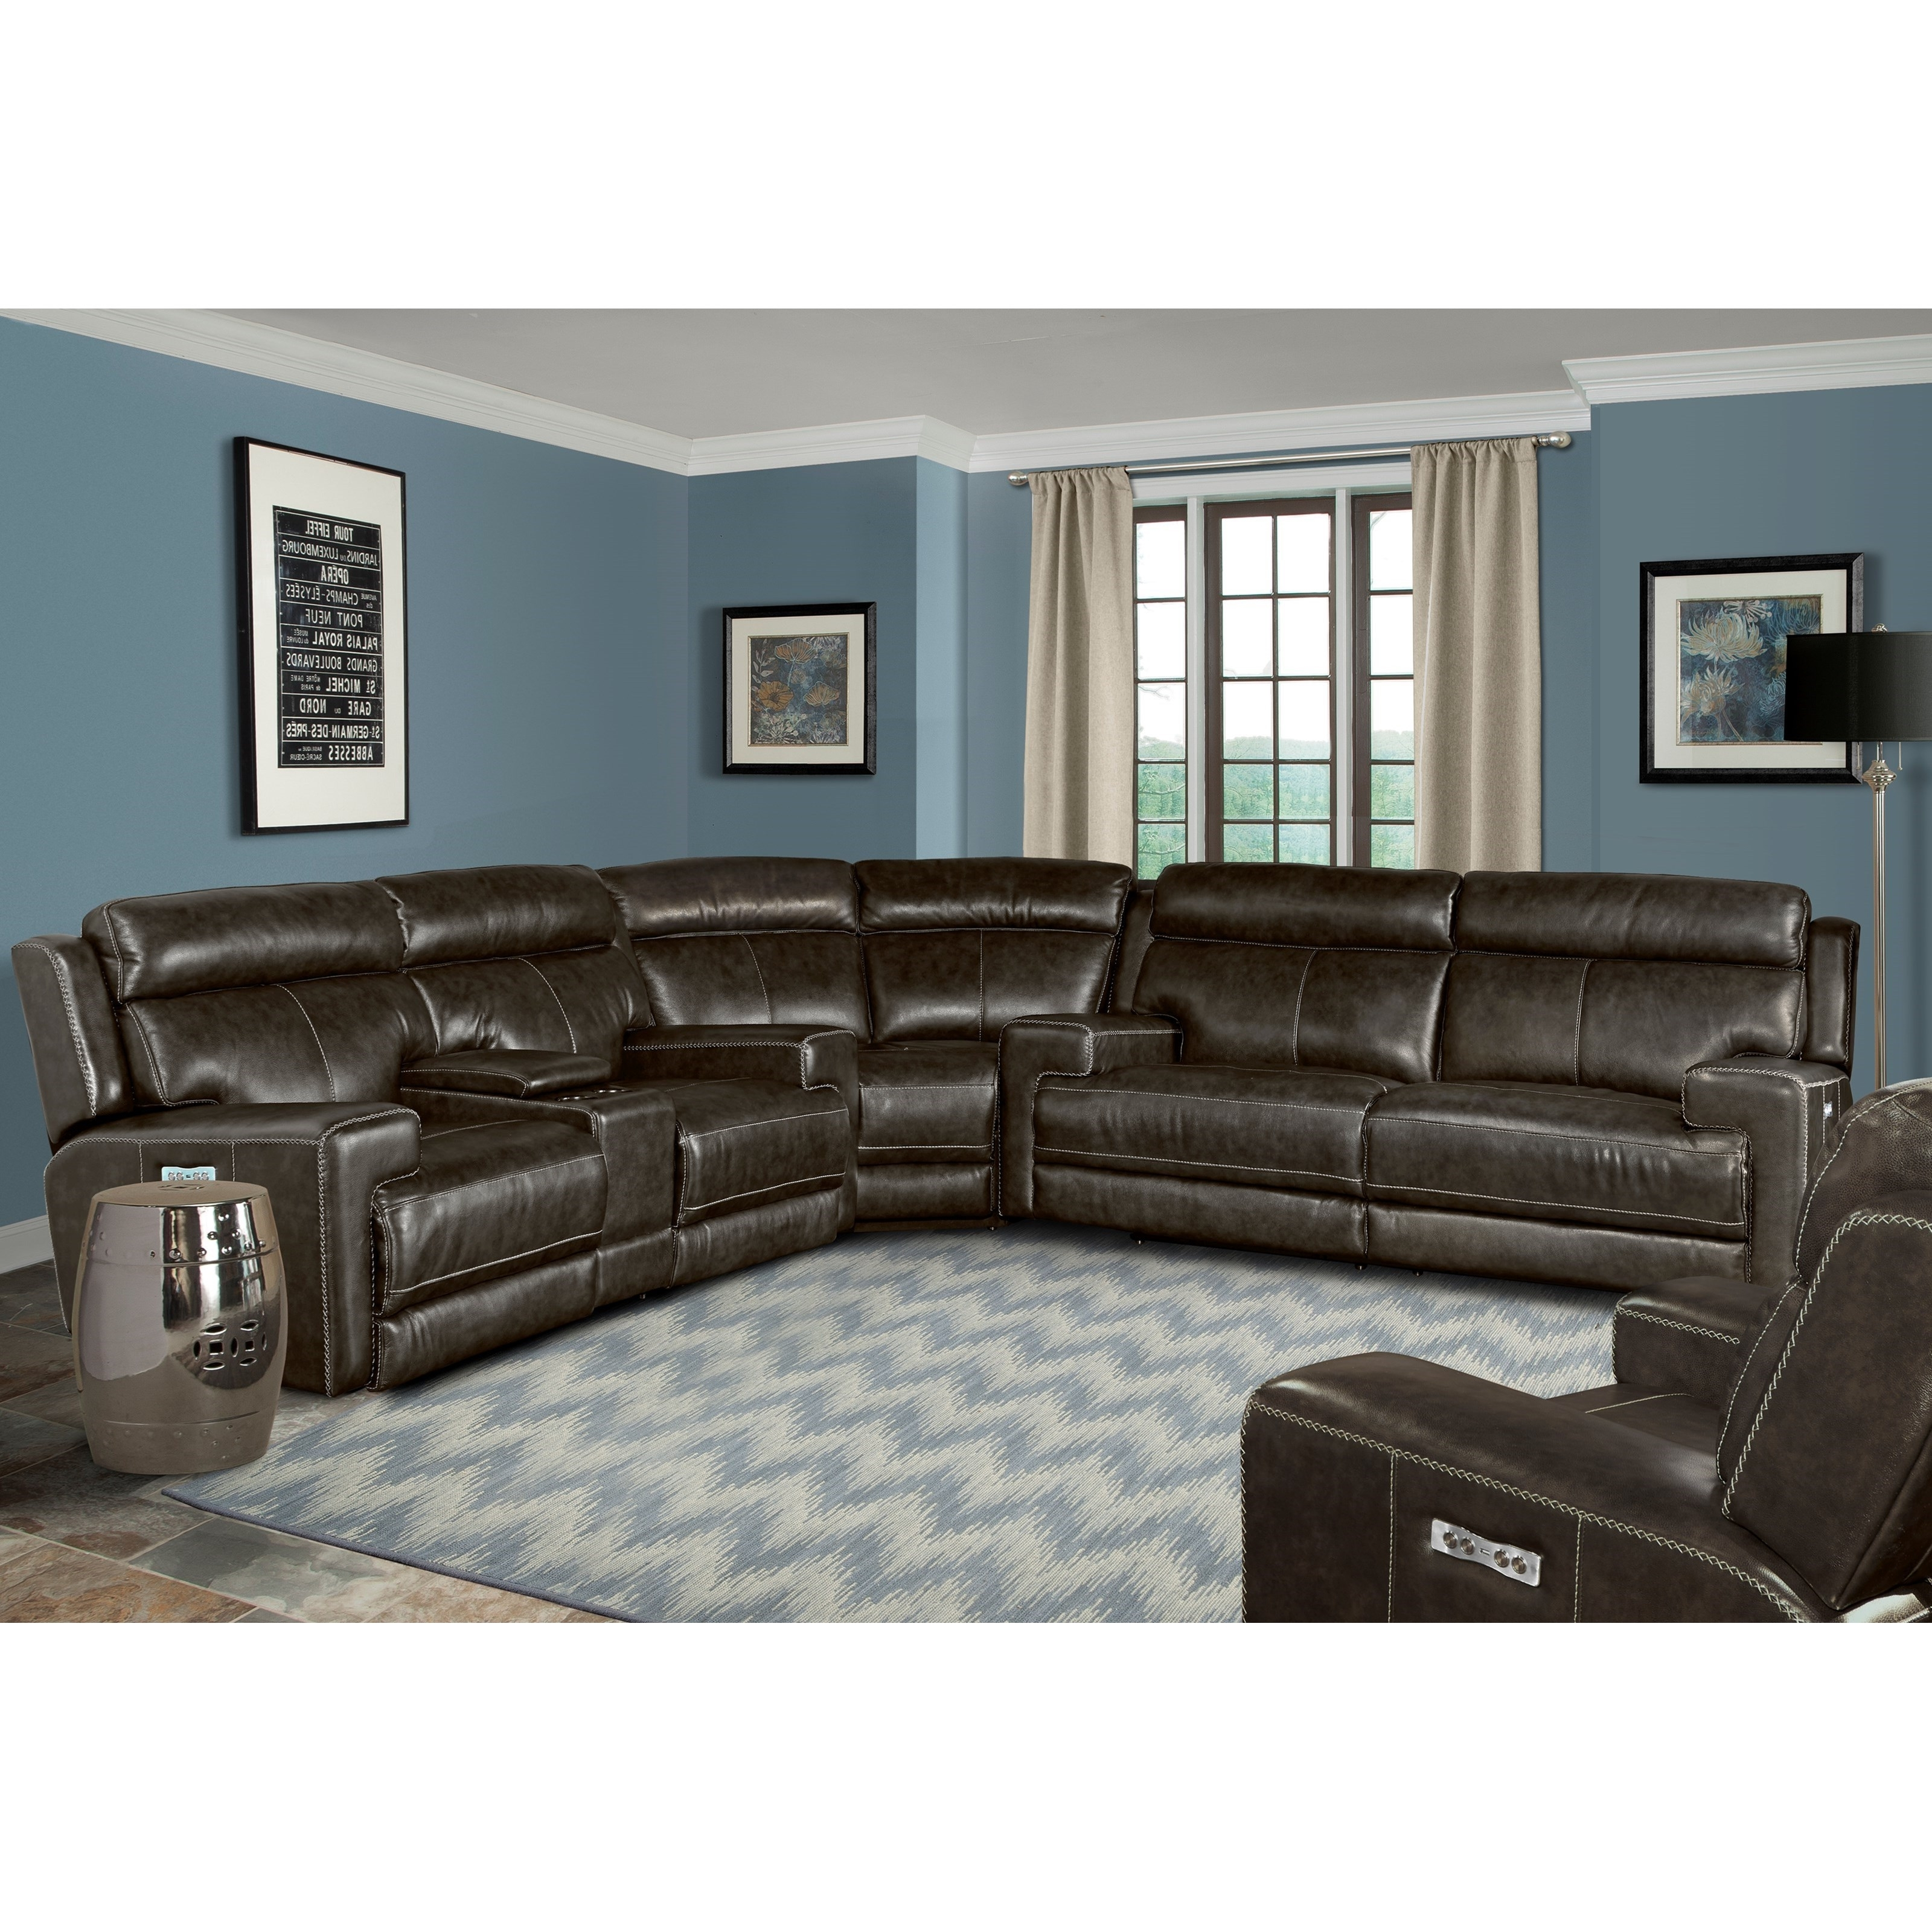 Sectional Sofas Barrie Ontario (View 17 of 20)